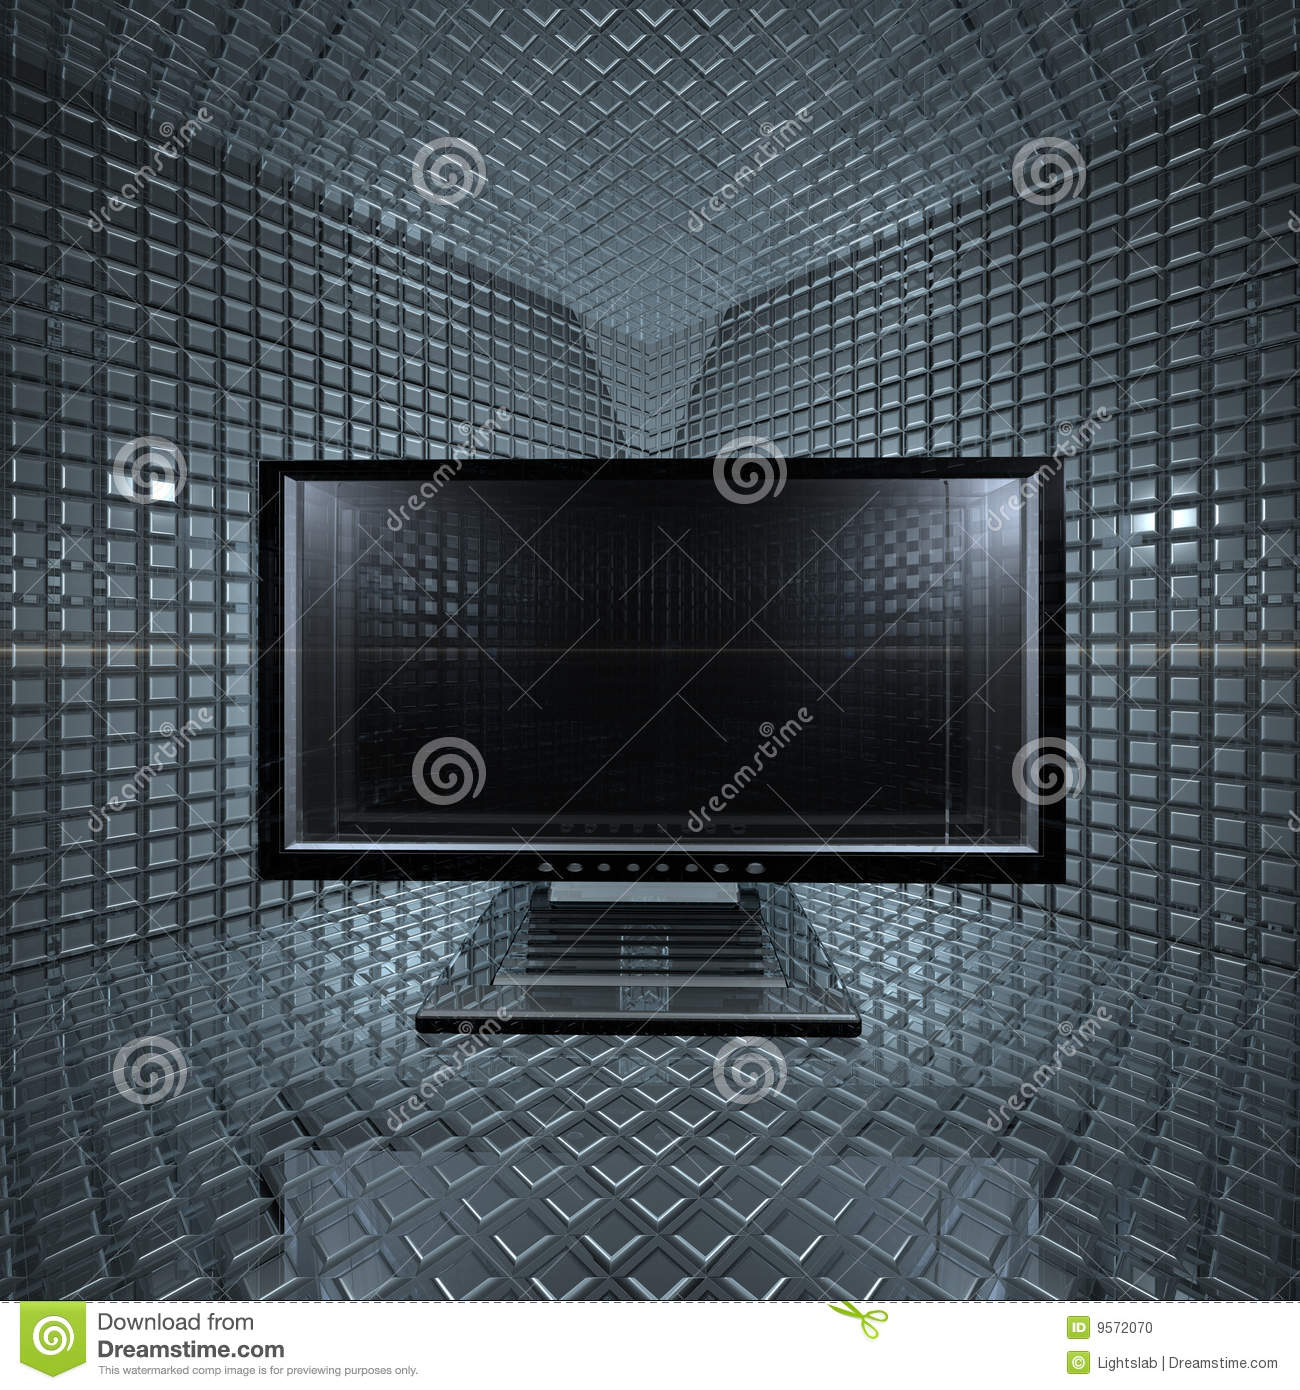 Monitors in grid room stock photo image 9572070 for Room grid